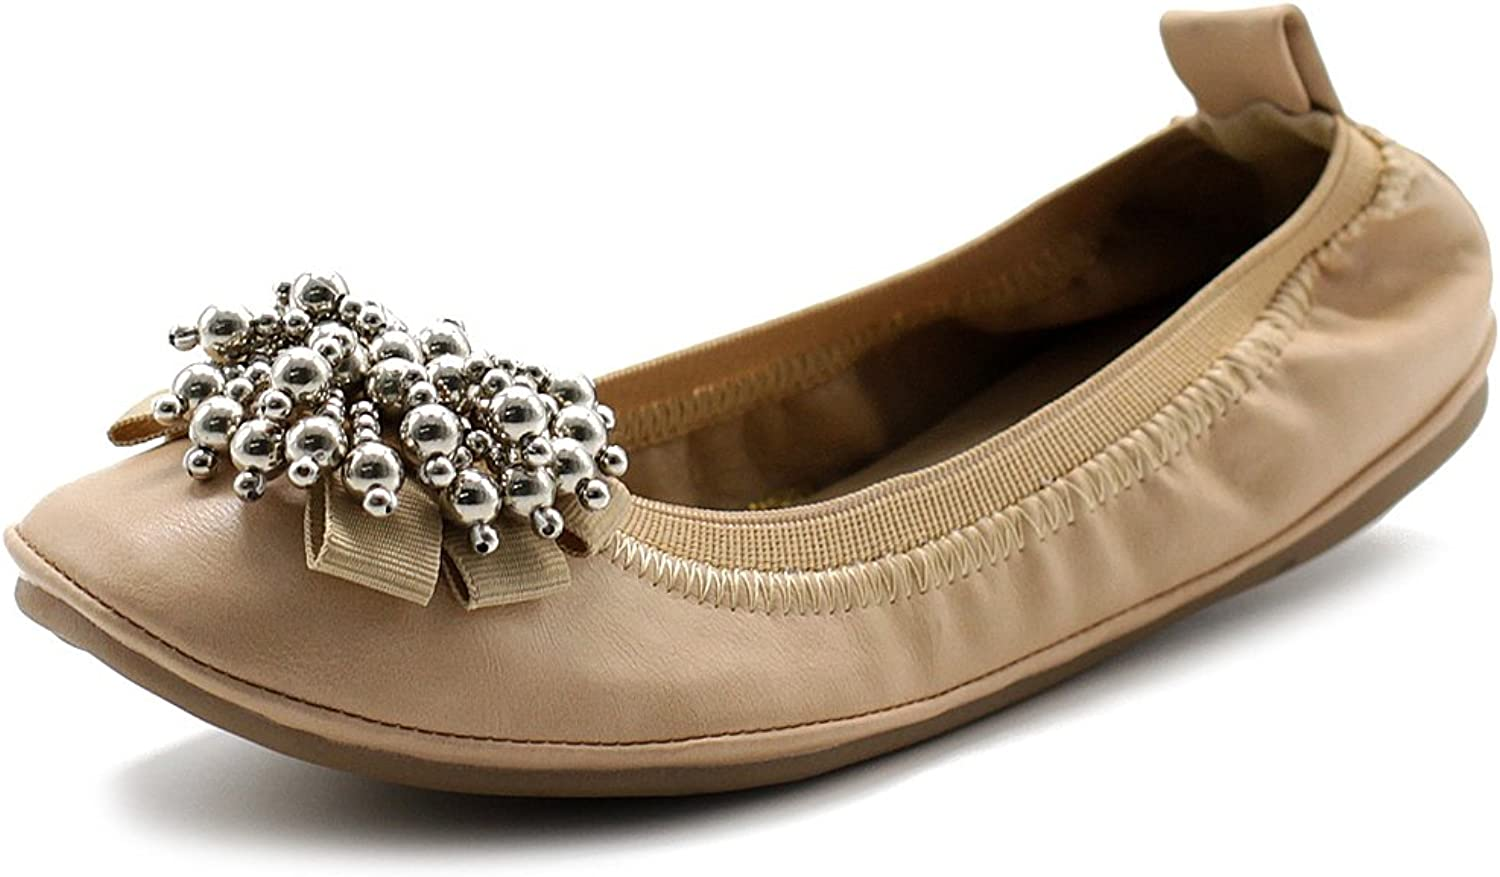 Ollio Women's Ballet shoes Soft Cute Silver Bead Accent Flat